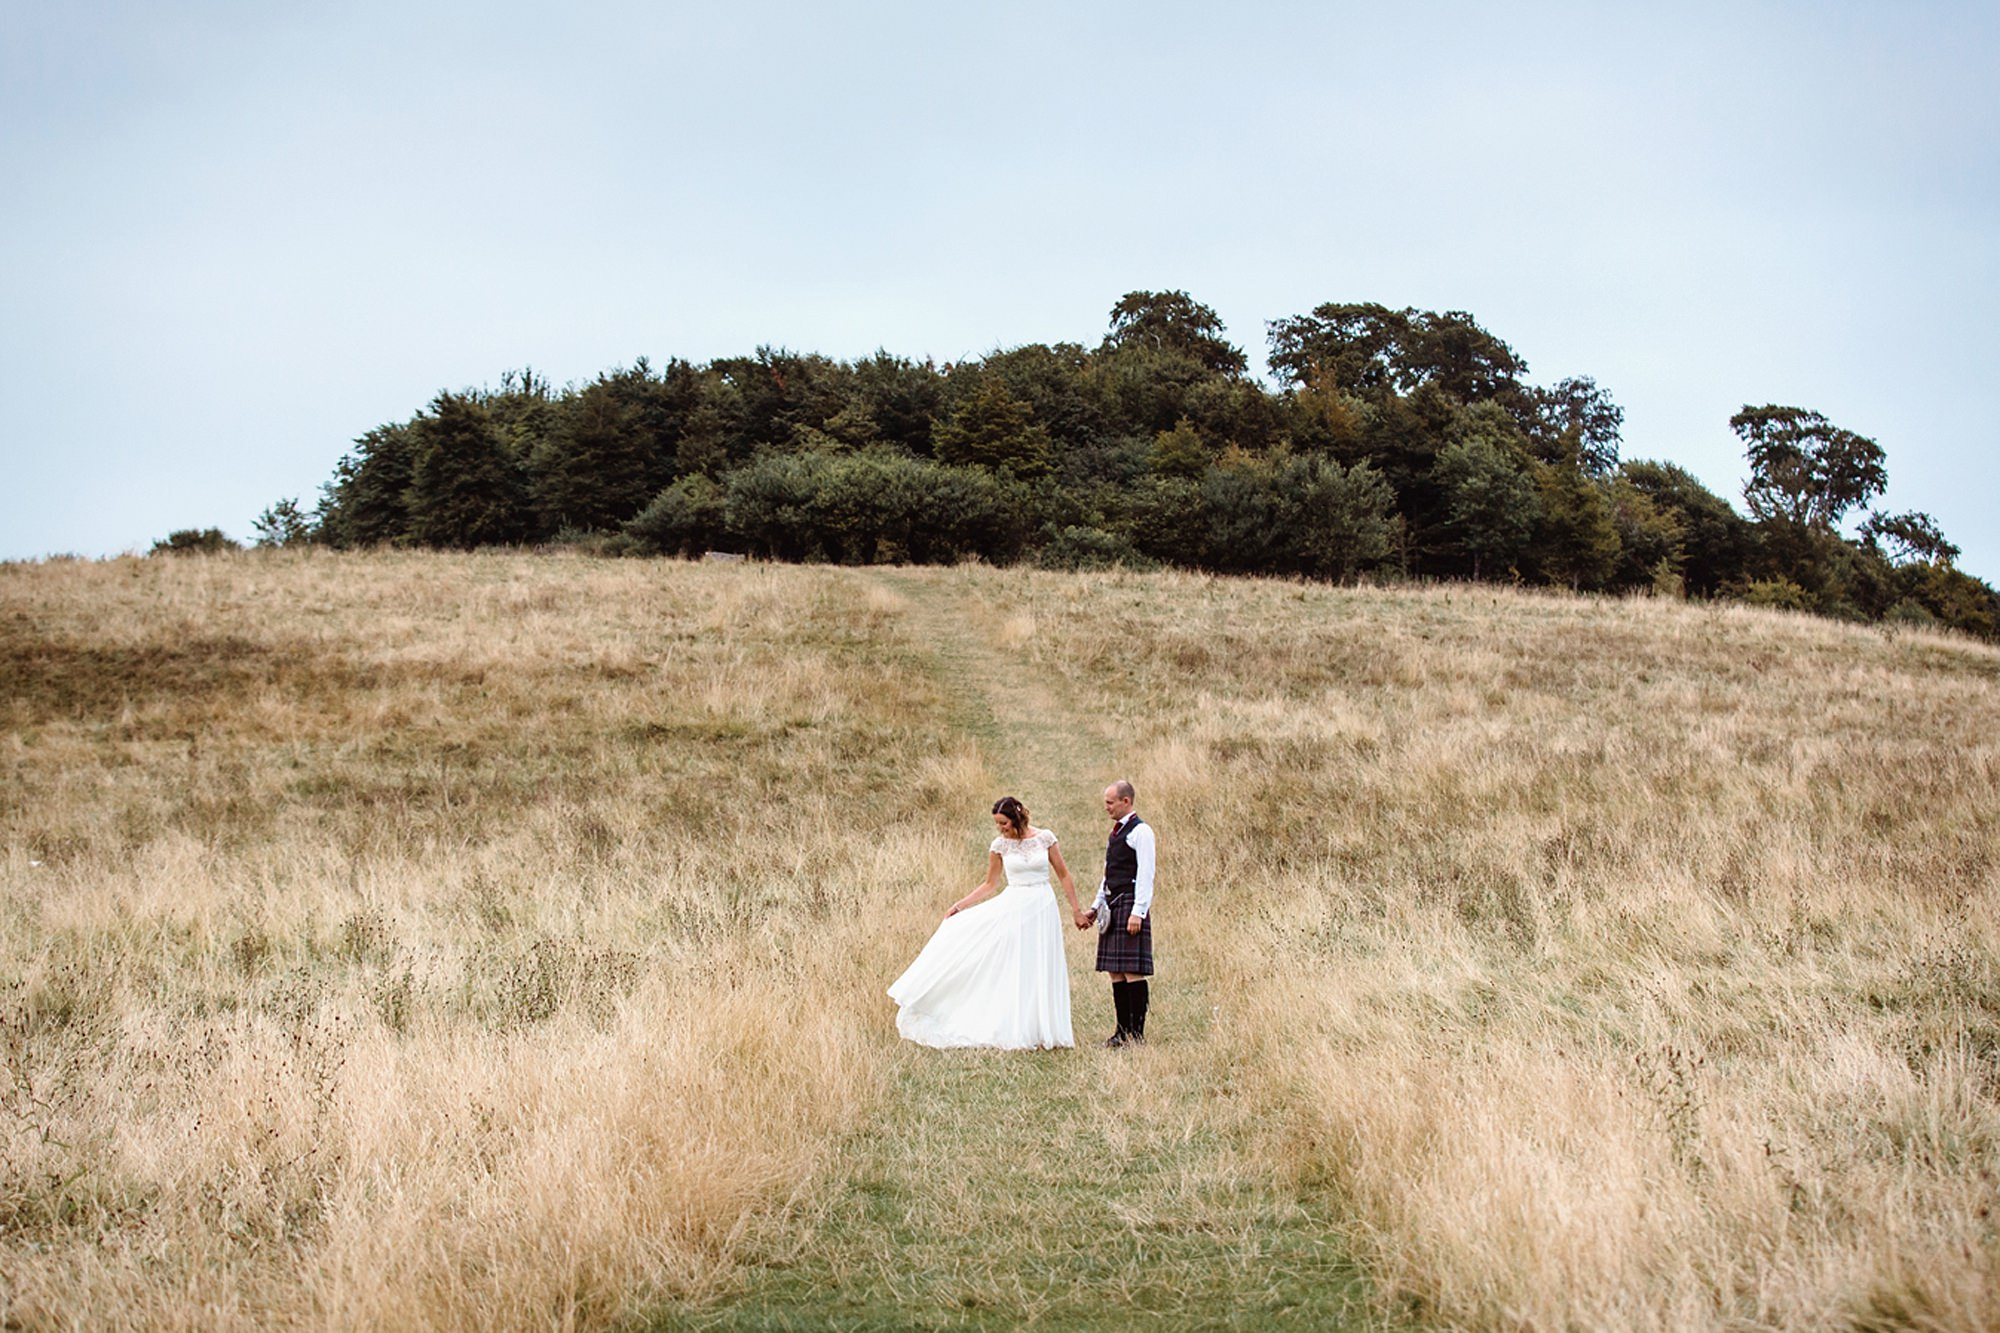 outdoor humanist wedding photography bride with dress